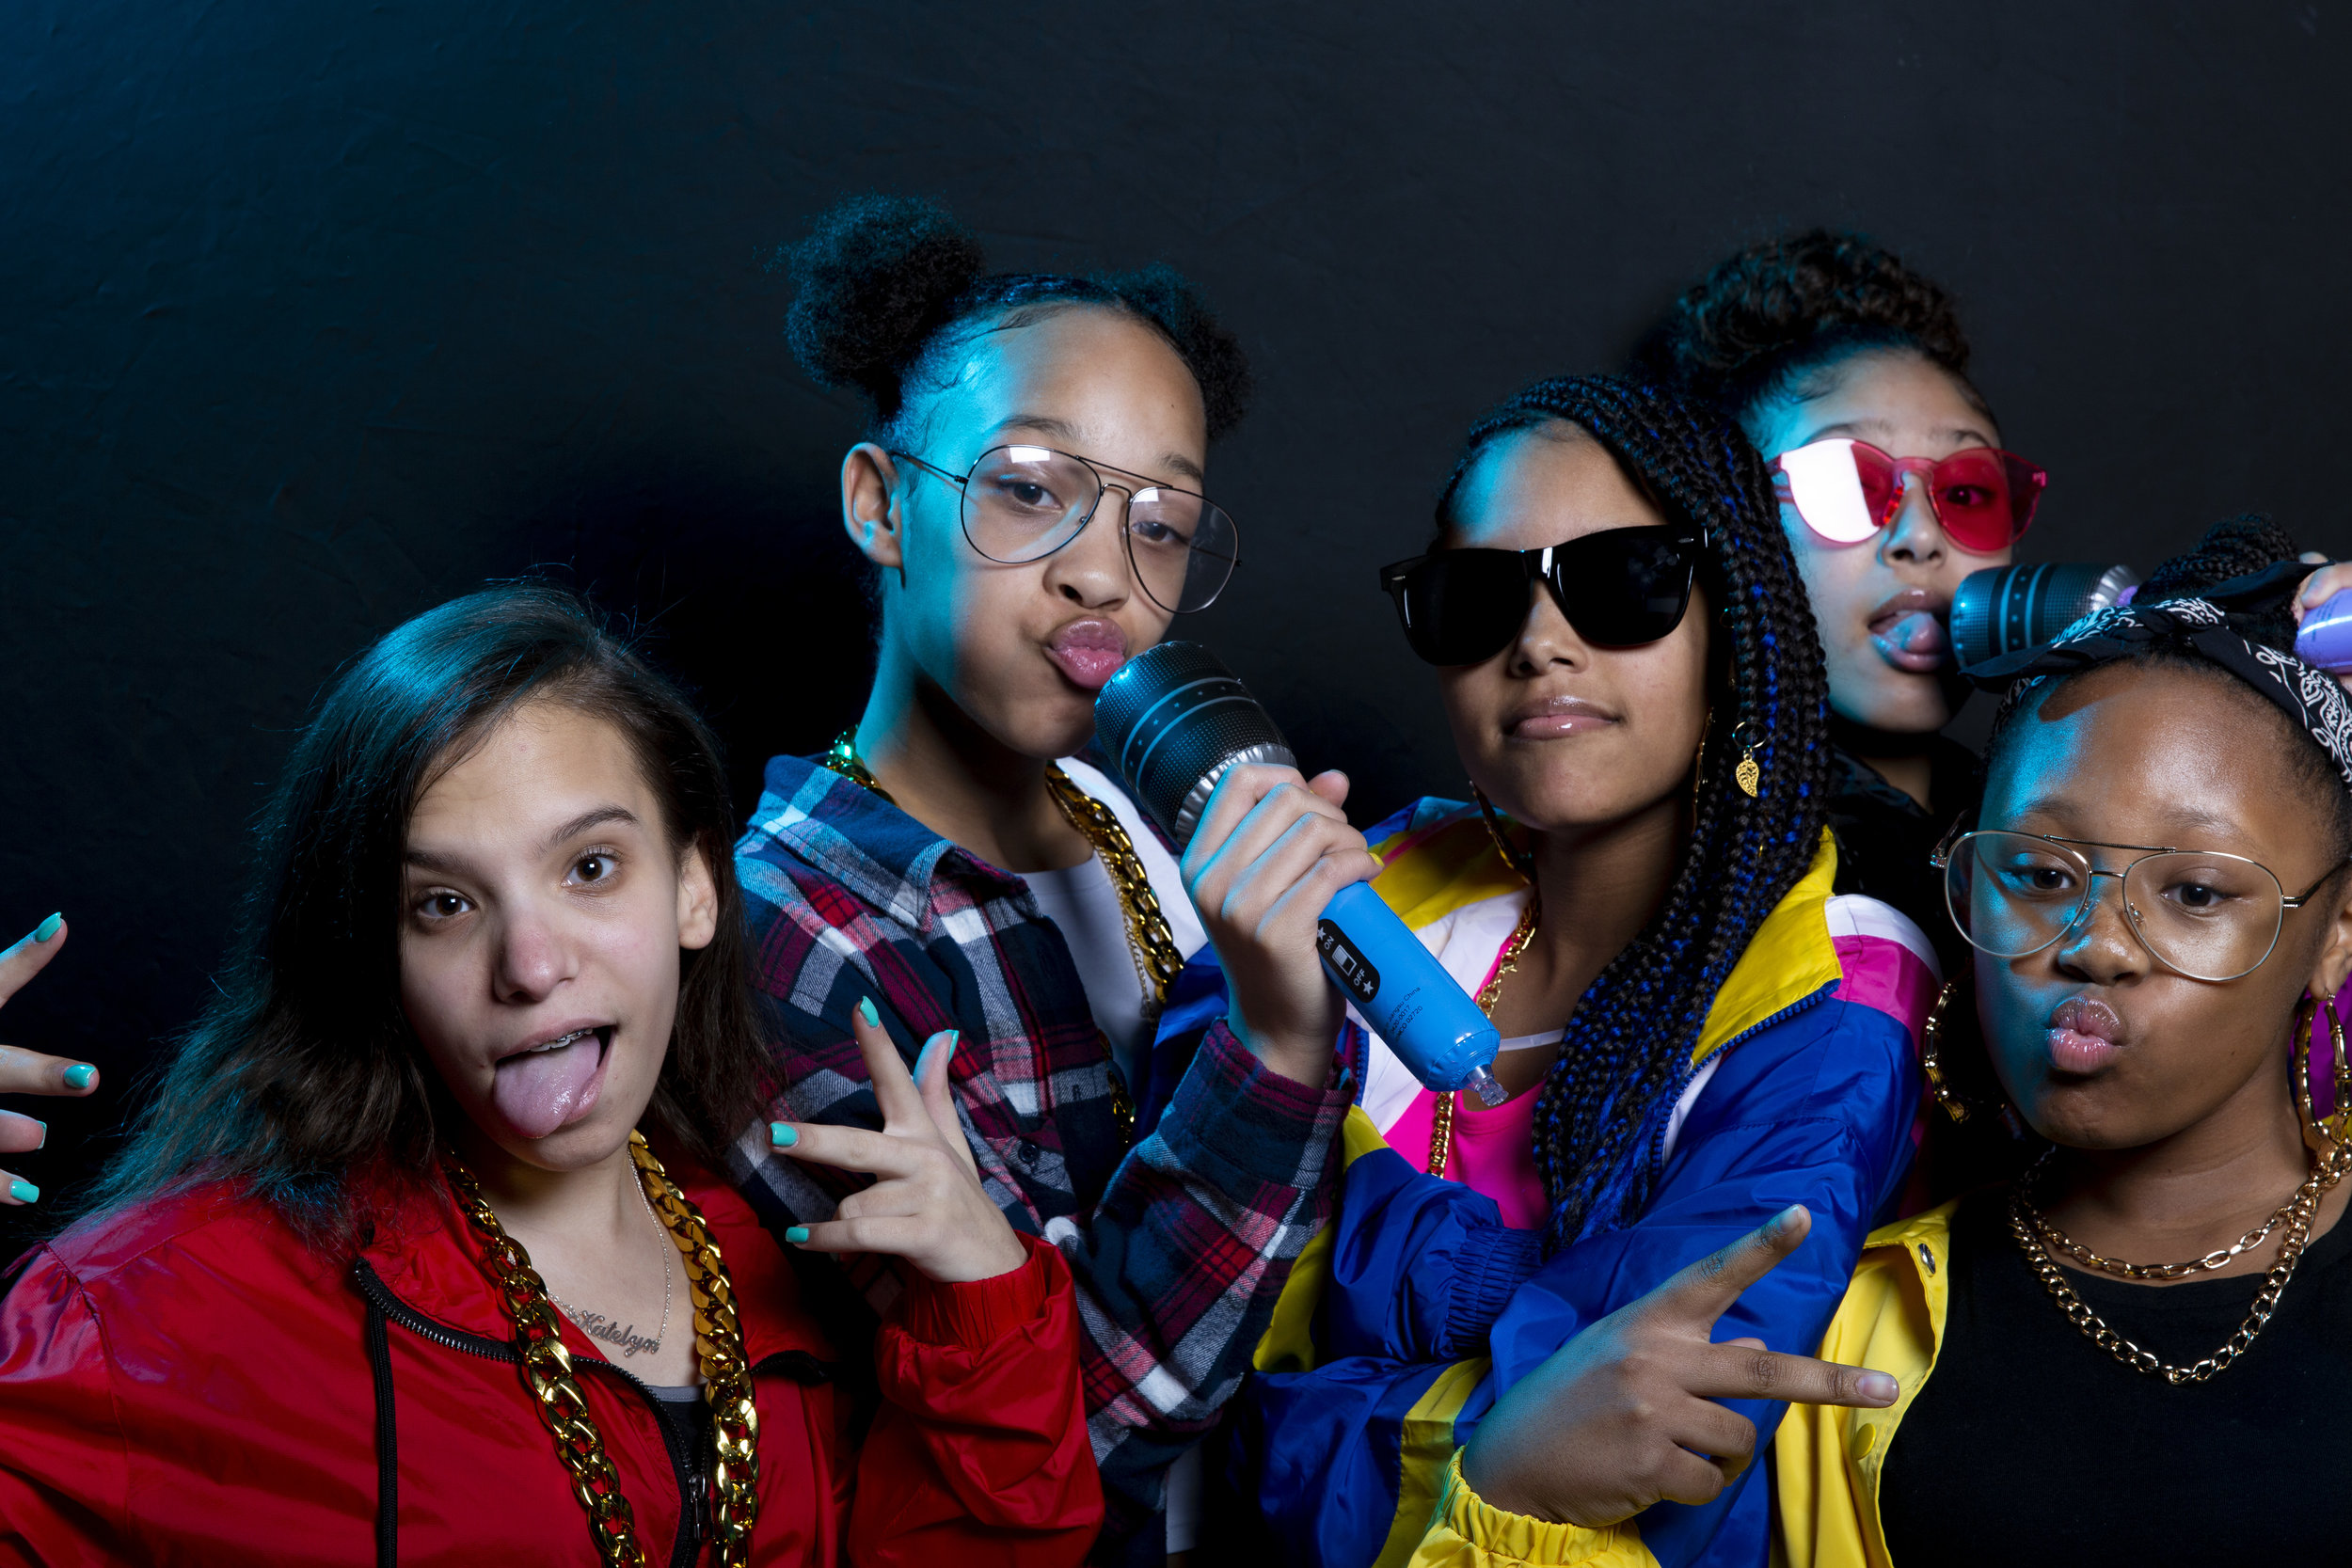 02-16-19 Kiana Hall  edits done-Giovanni The Photographer-Boston Photo Booth Rental-Cambridge_3.jpg